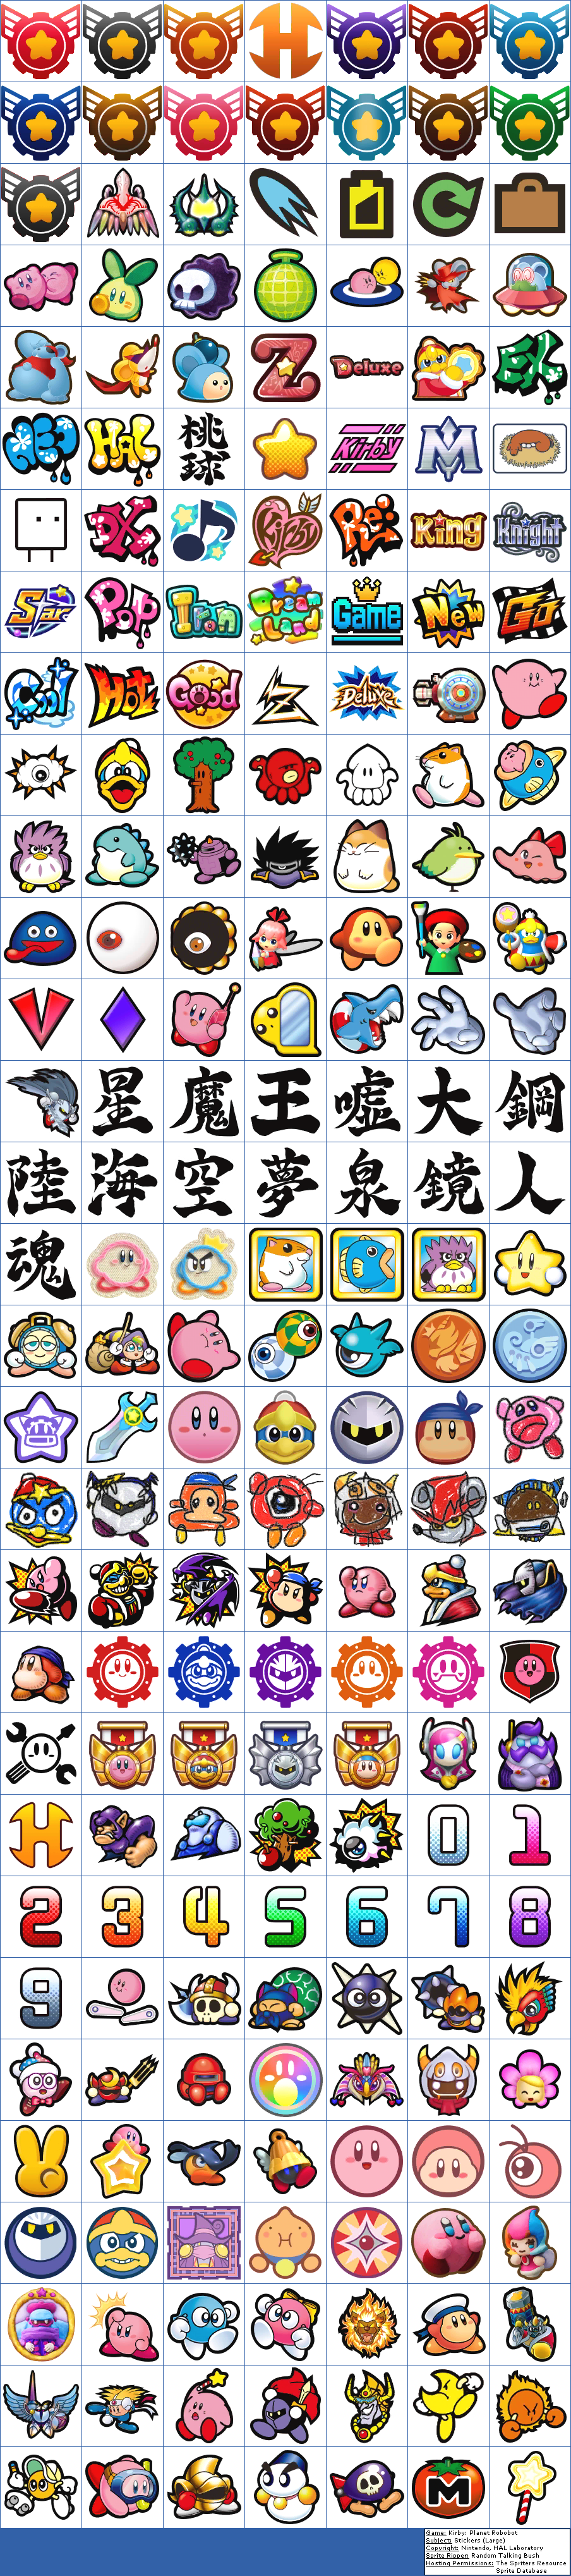 The Spriters Resource Full Sheet View Kirby Planet Robobot Stickers Large